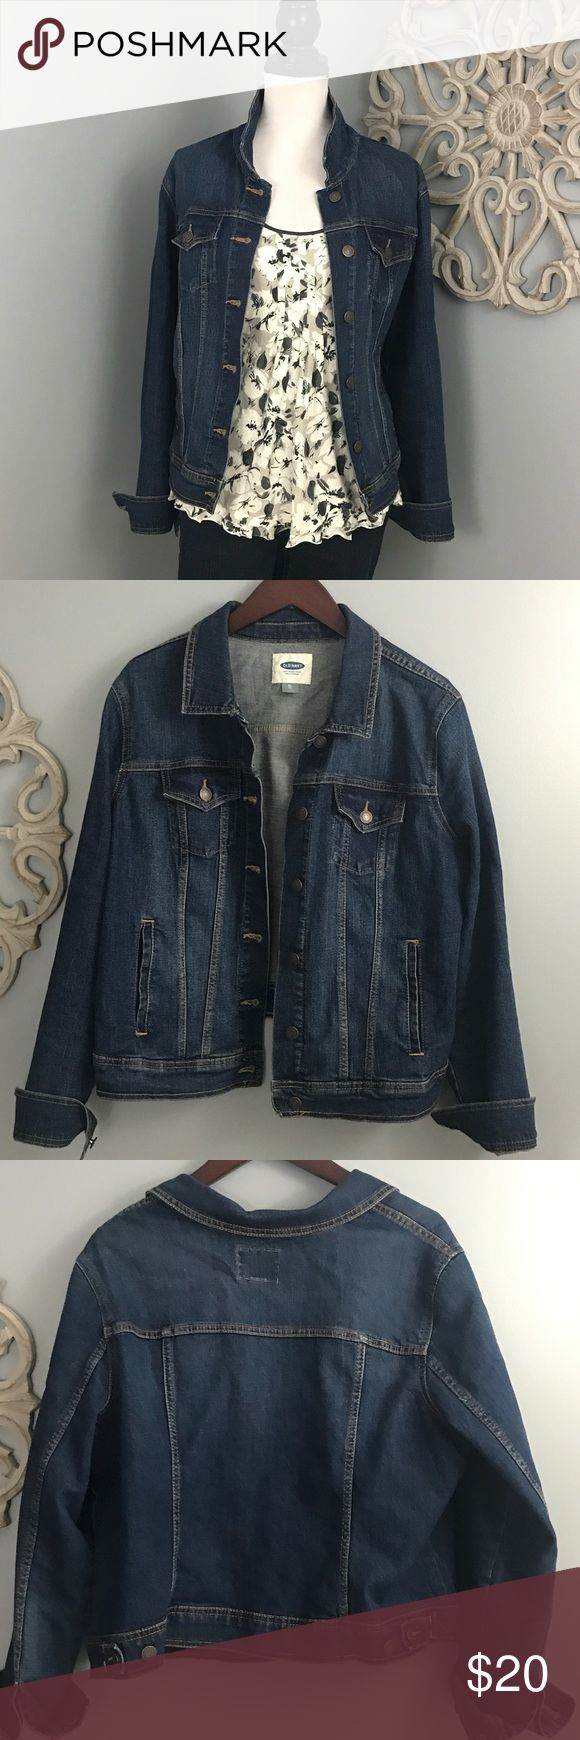 Old Navy | Jean Jacket Get ready for fall in this dark navy jean jacket by Old Navy.  EUC No rips, stains, snags or tears. Old Navy Jackets & Coats Jean Jackets